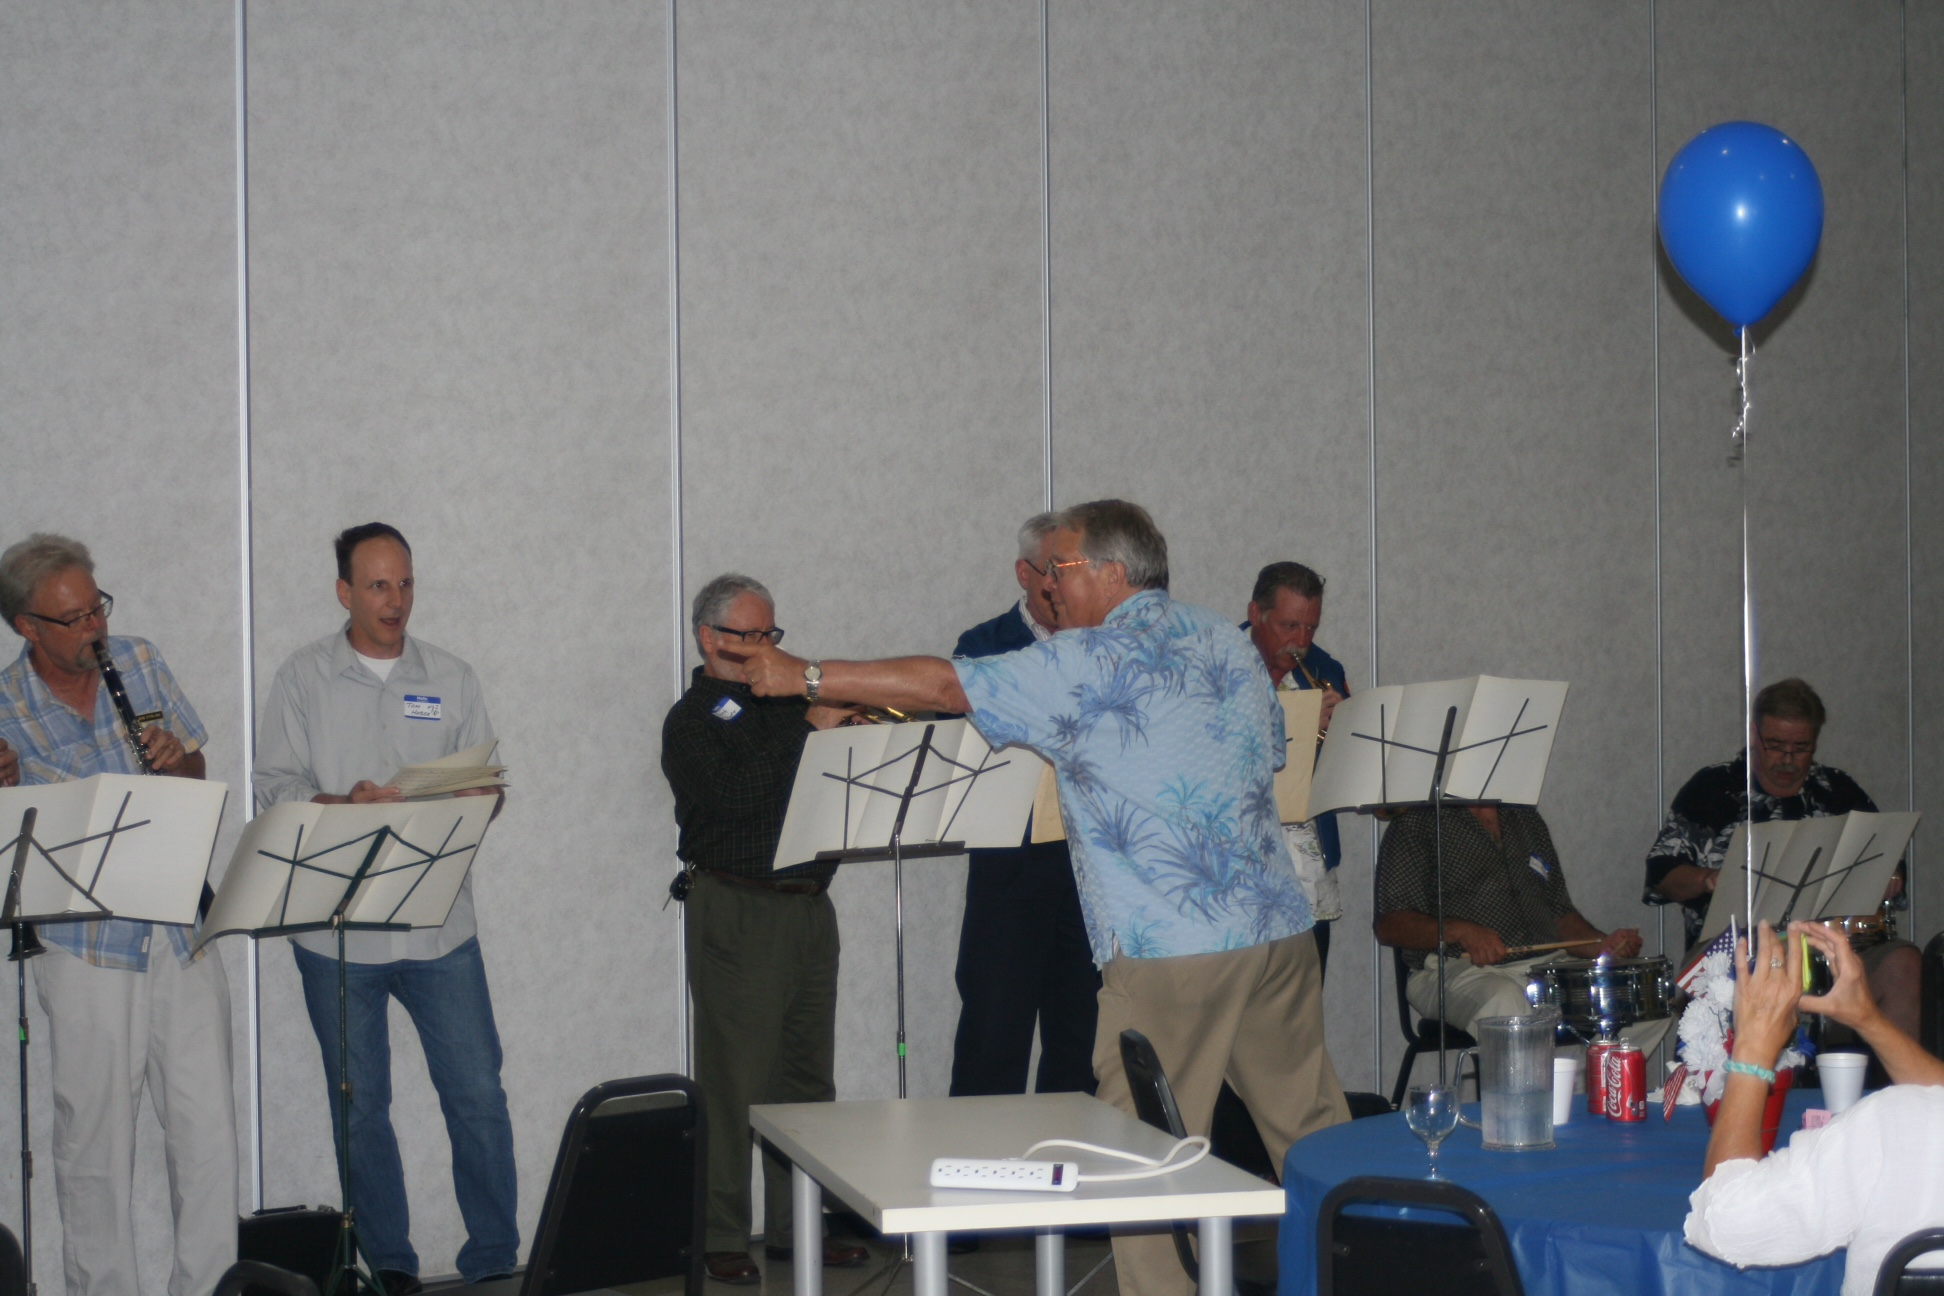 """Director Bill Kuzma leads the alumni members in the group's signature song """"South Rampart Street Parade"""". (Courtesy Joanne Lento Miller)"""